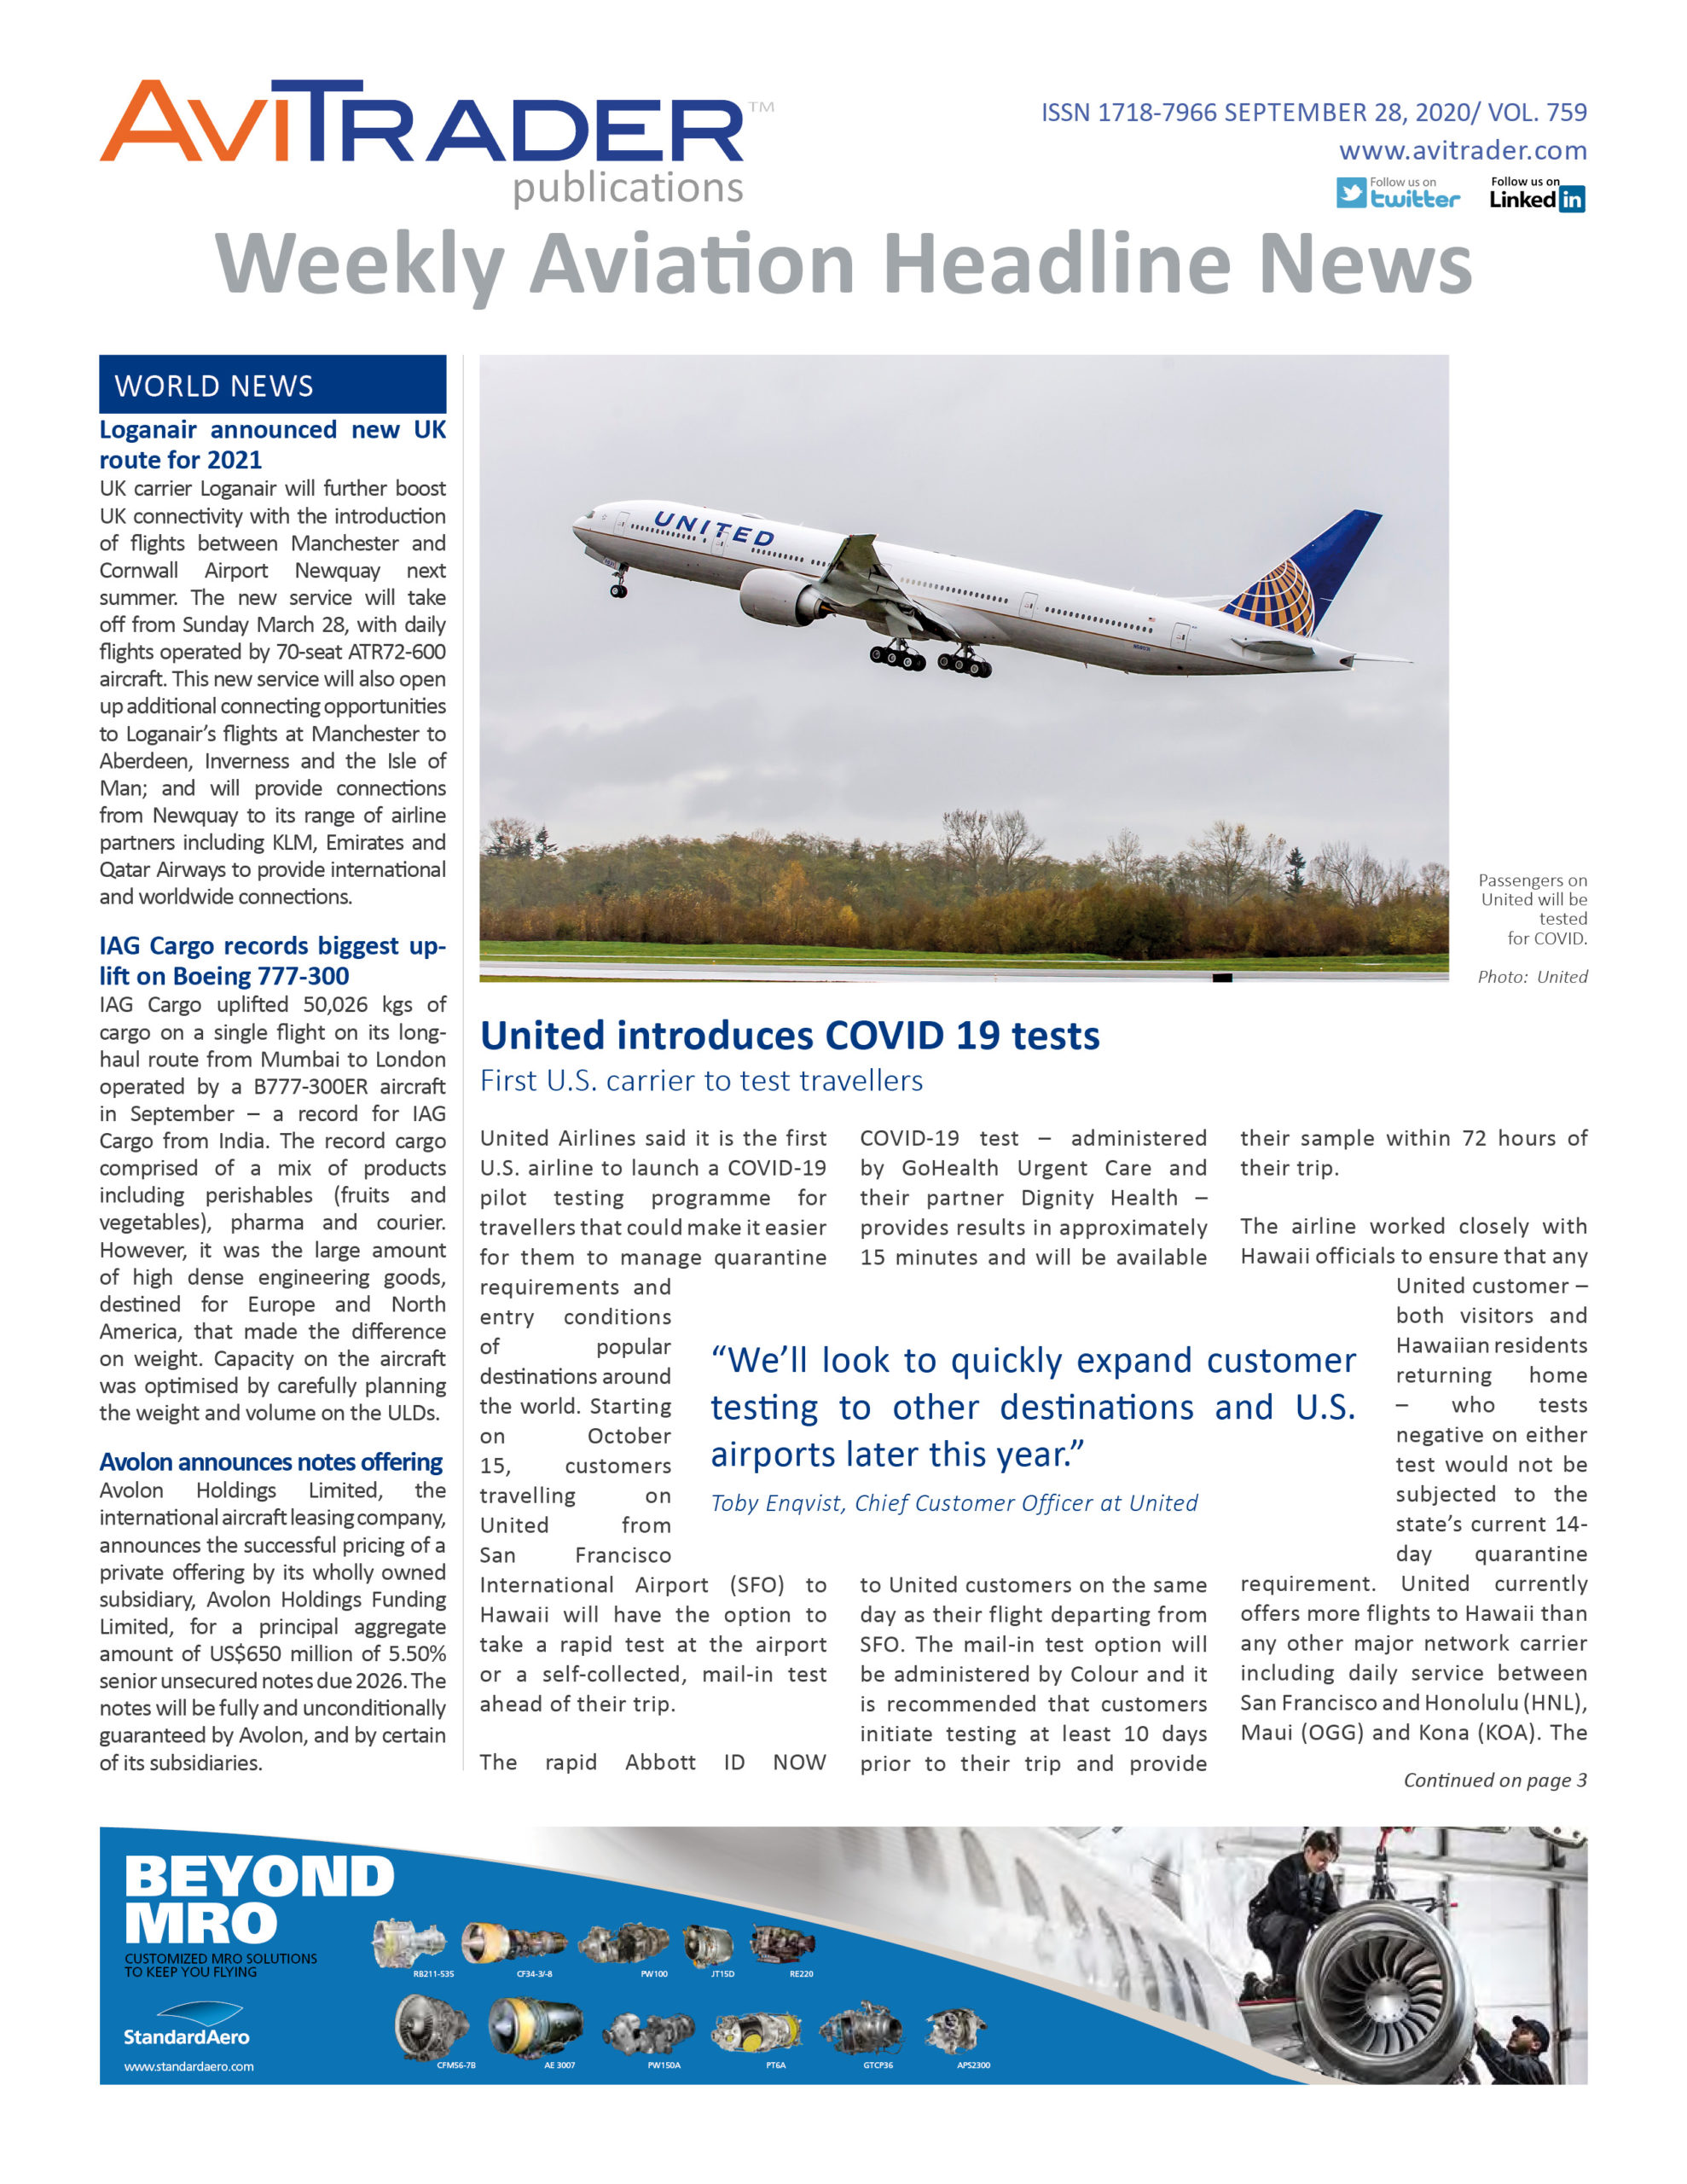 AviTrader_Weekly_Headline_News_Cover_2020-09-28